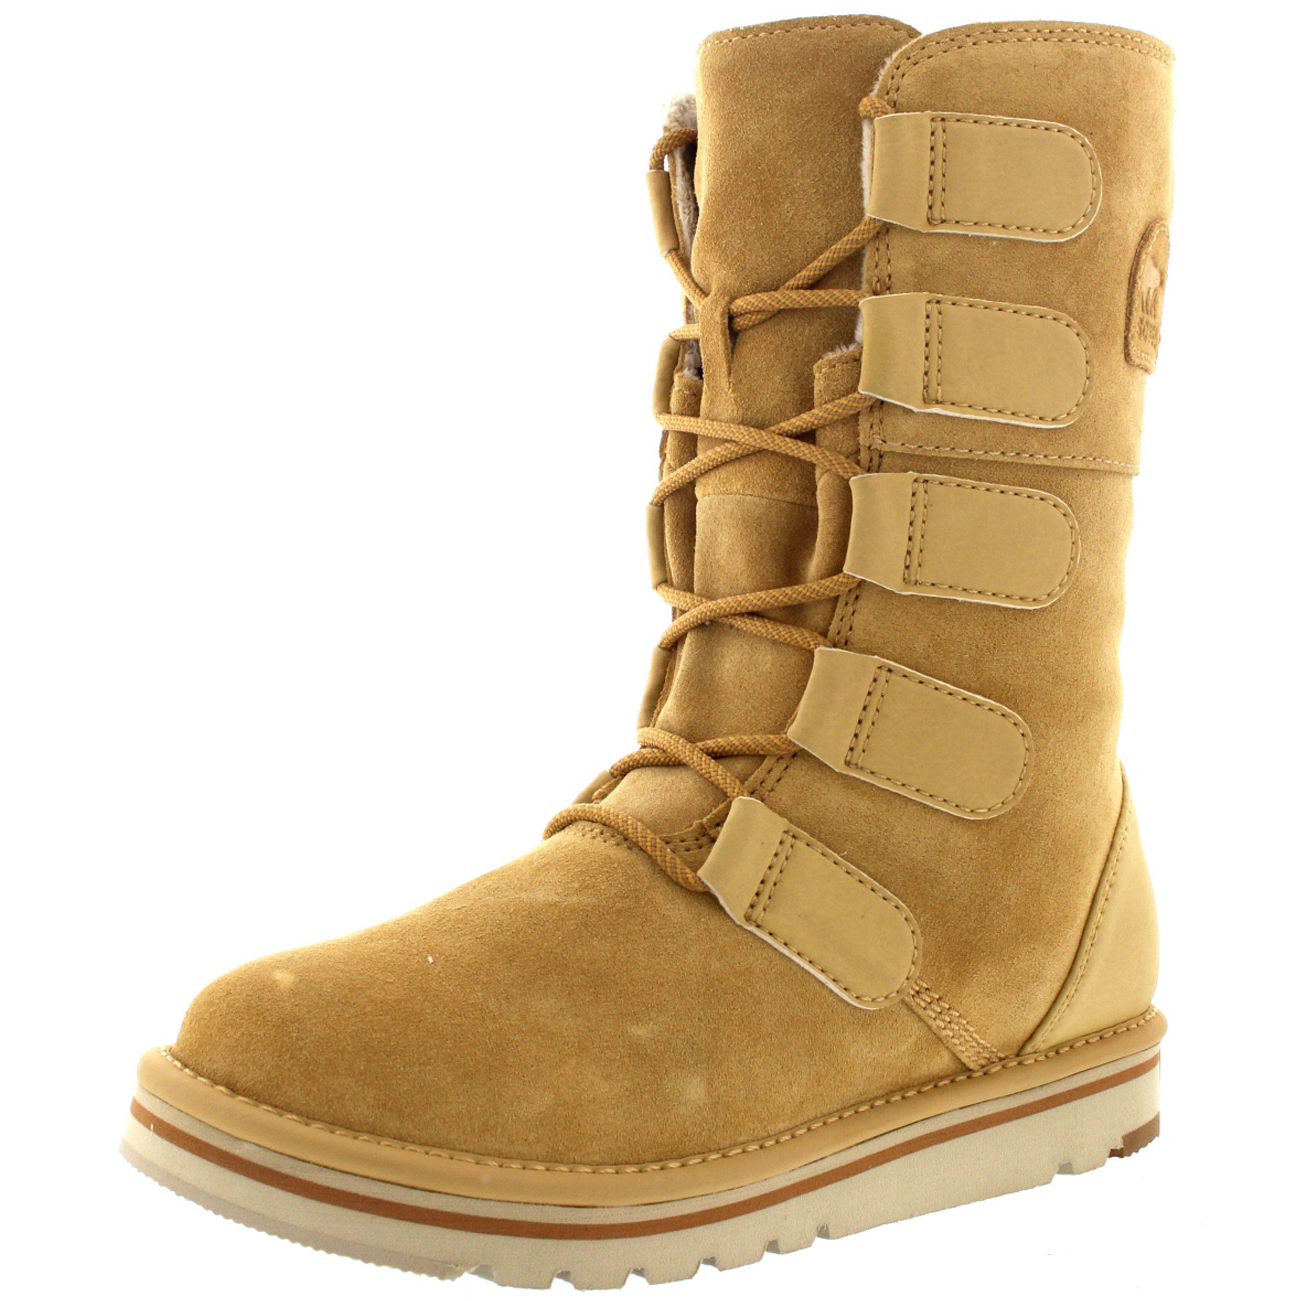 pretty nice 649a0 9c8b3 Womens-Sorel-The-Newbie-Lace-Suede-Fur-Lined-